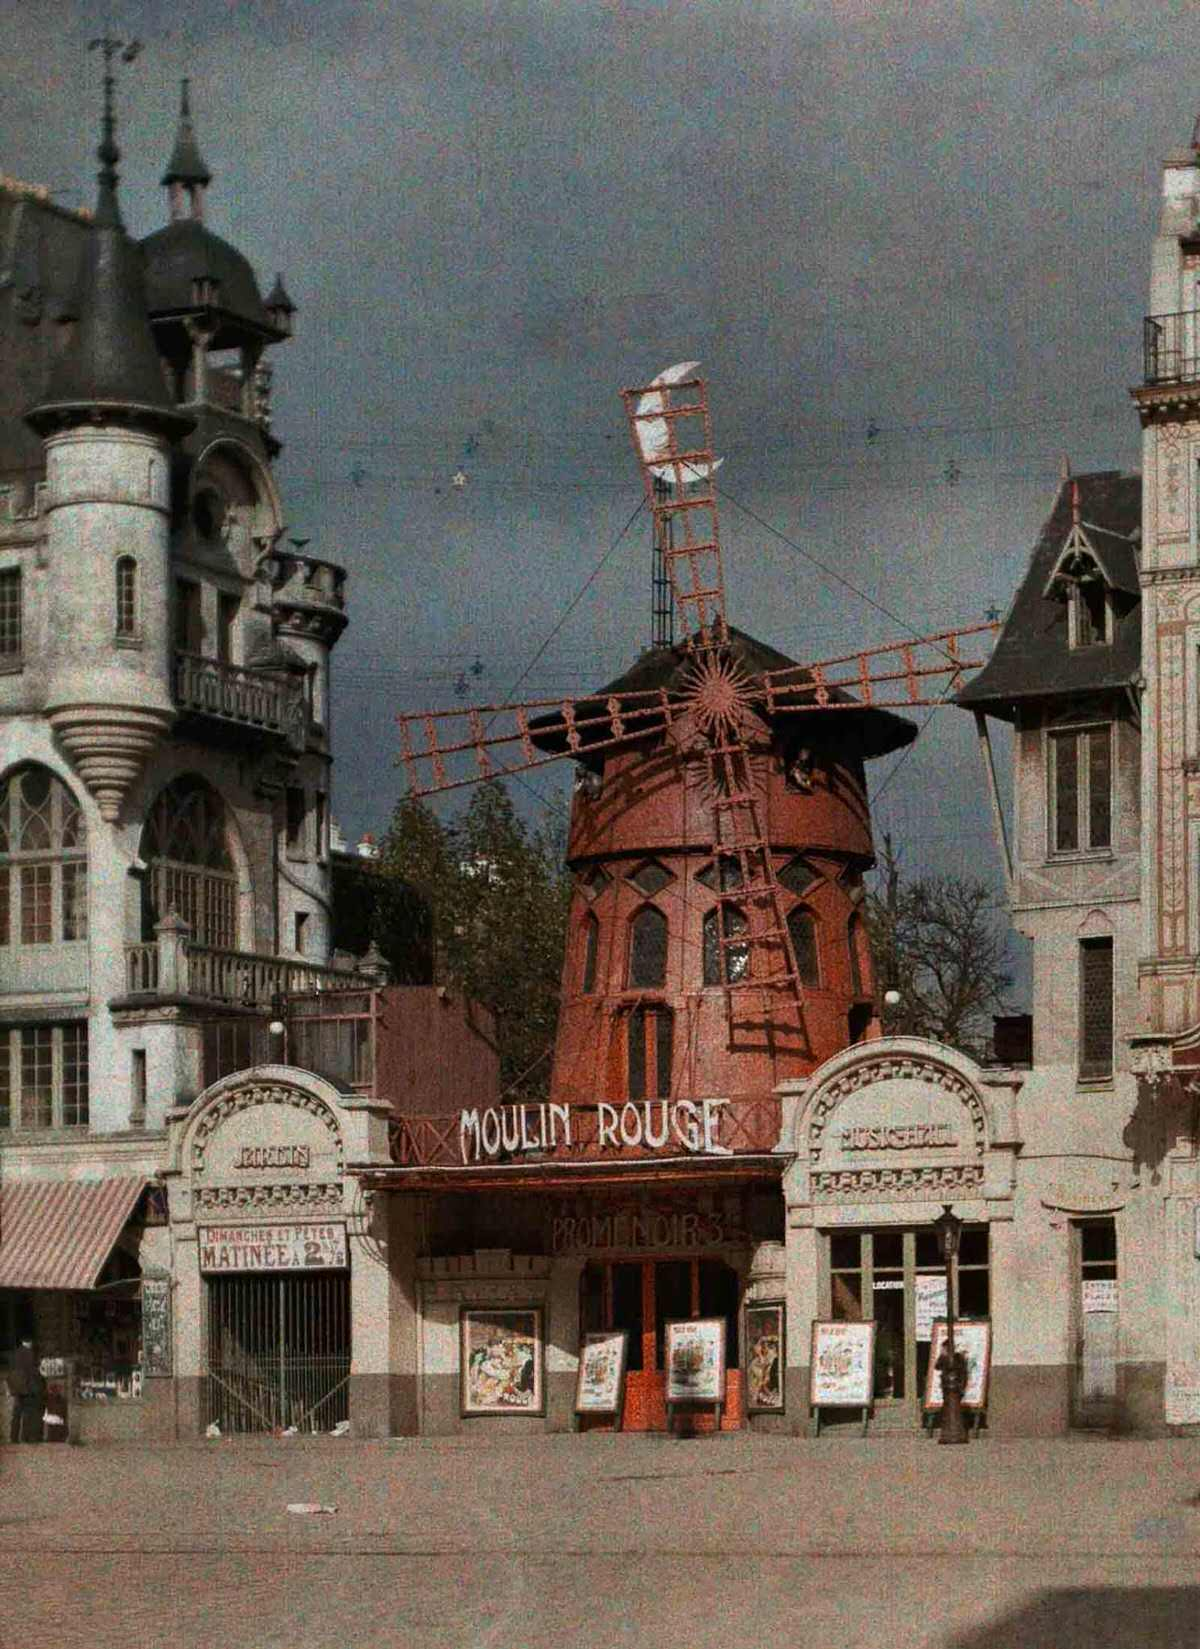 The Moulin Rouge nightclub at Montmarte.